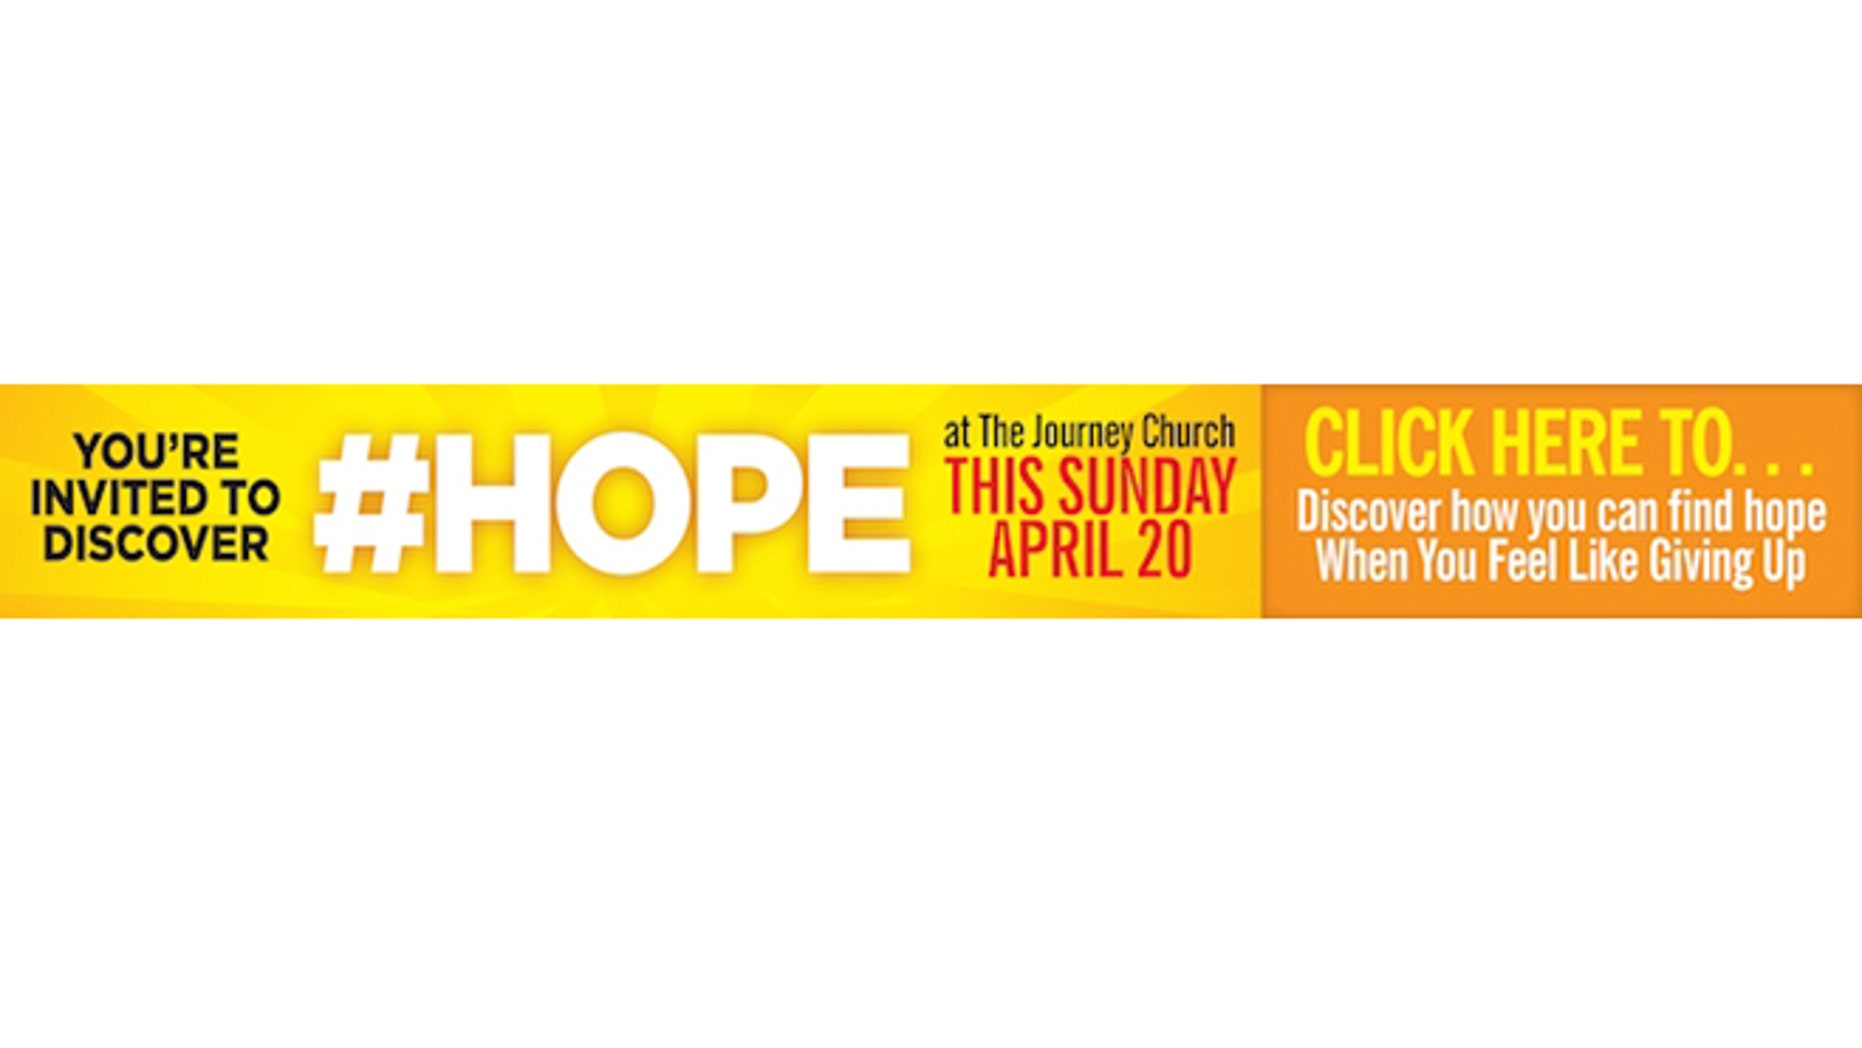 An ad for the Christian evangelical congregation Journey Church, which will run on the Capital New York website after the New York City news organization earlier told the group it was going to pull the advertising campaign.